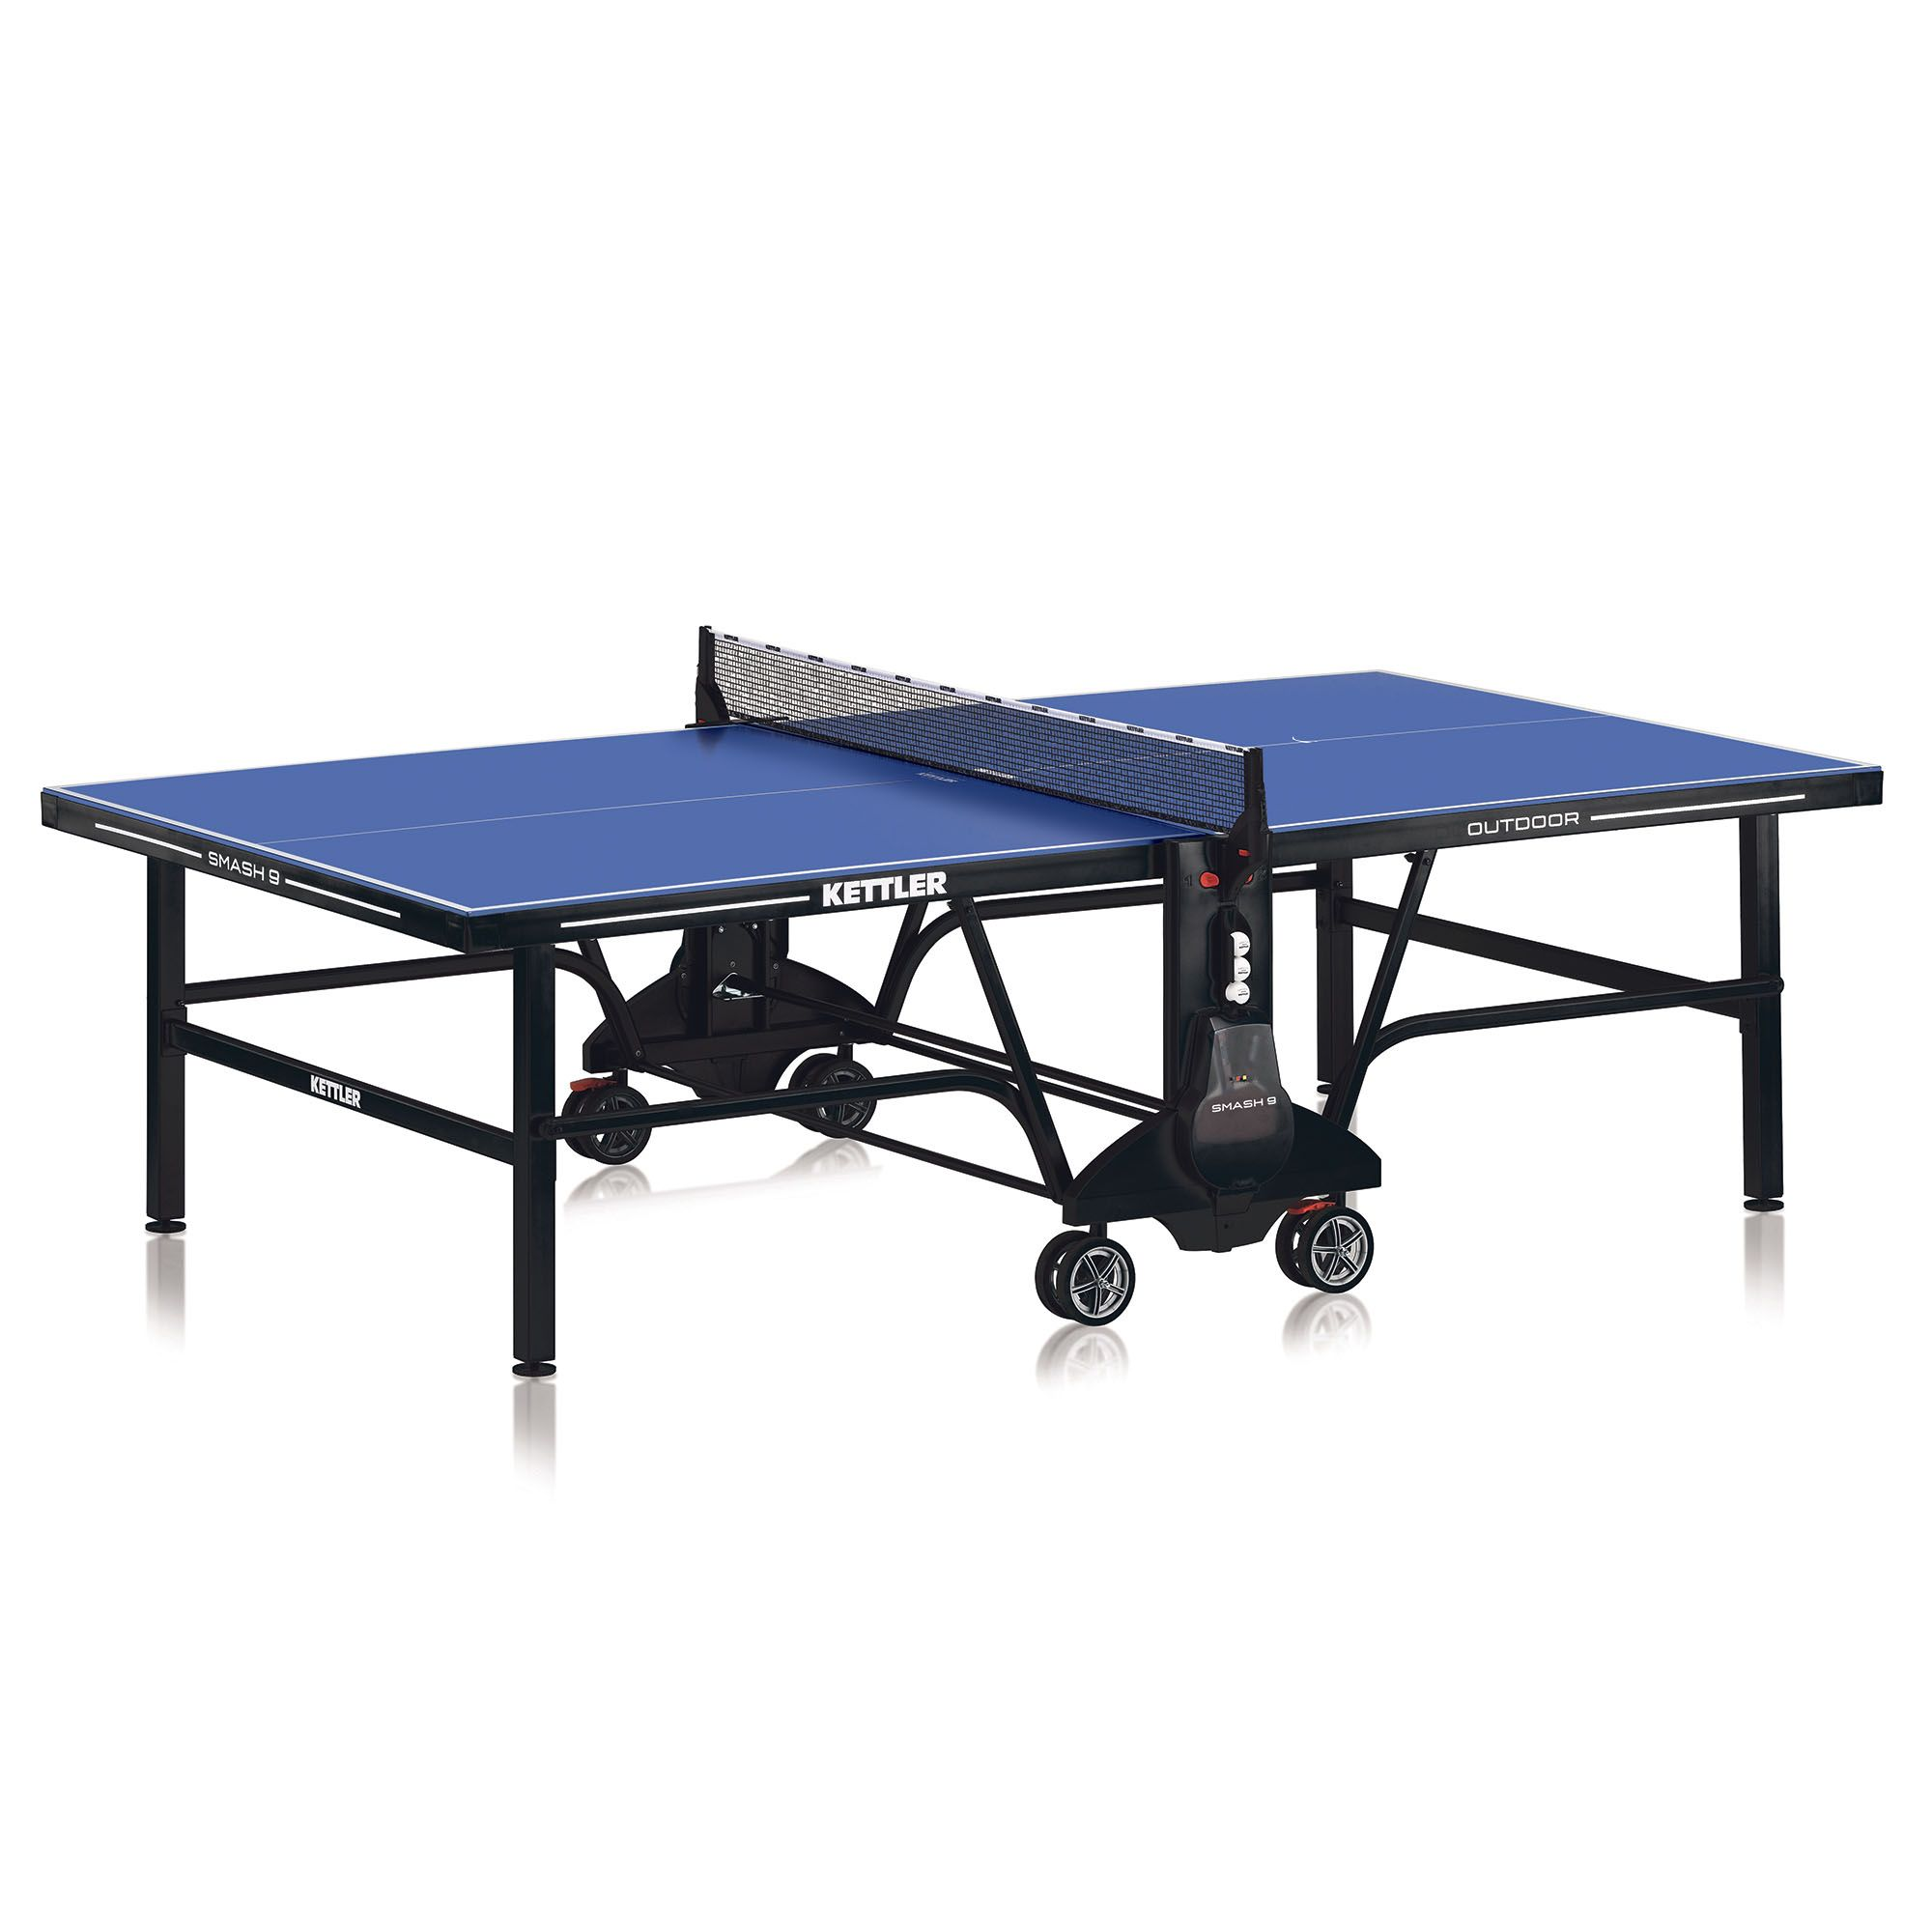 kettler smash 9 outdoor table tennis table